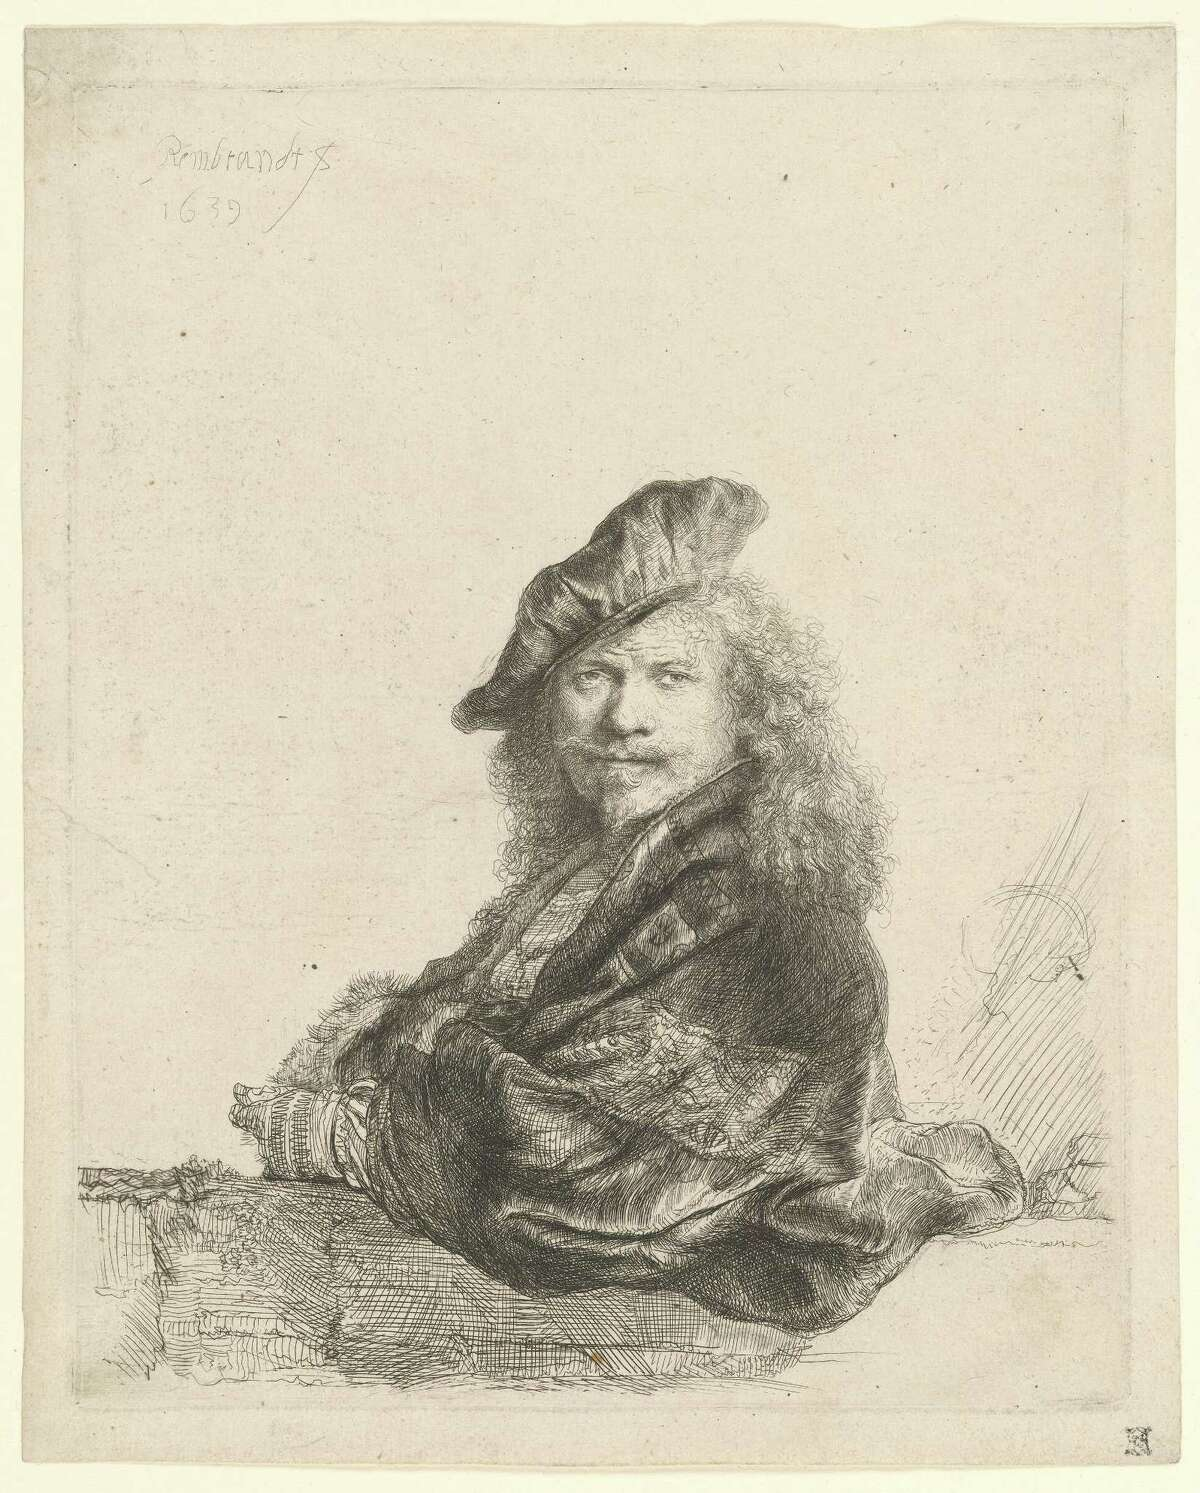 """Rembrandt's etching """"Self-Portrait Leaning on a Stone Sill"""" is from 1639. It is on loan from the Morgan Library & Museum in New York, to the Wadsworth Atheneum, in Hartford, as as example of gifts given to museums by J. Pierpont Morgan."""